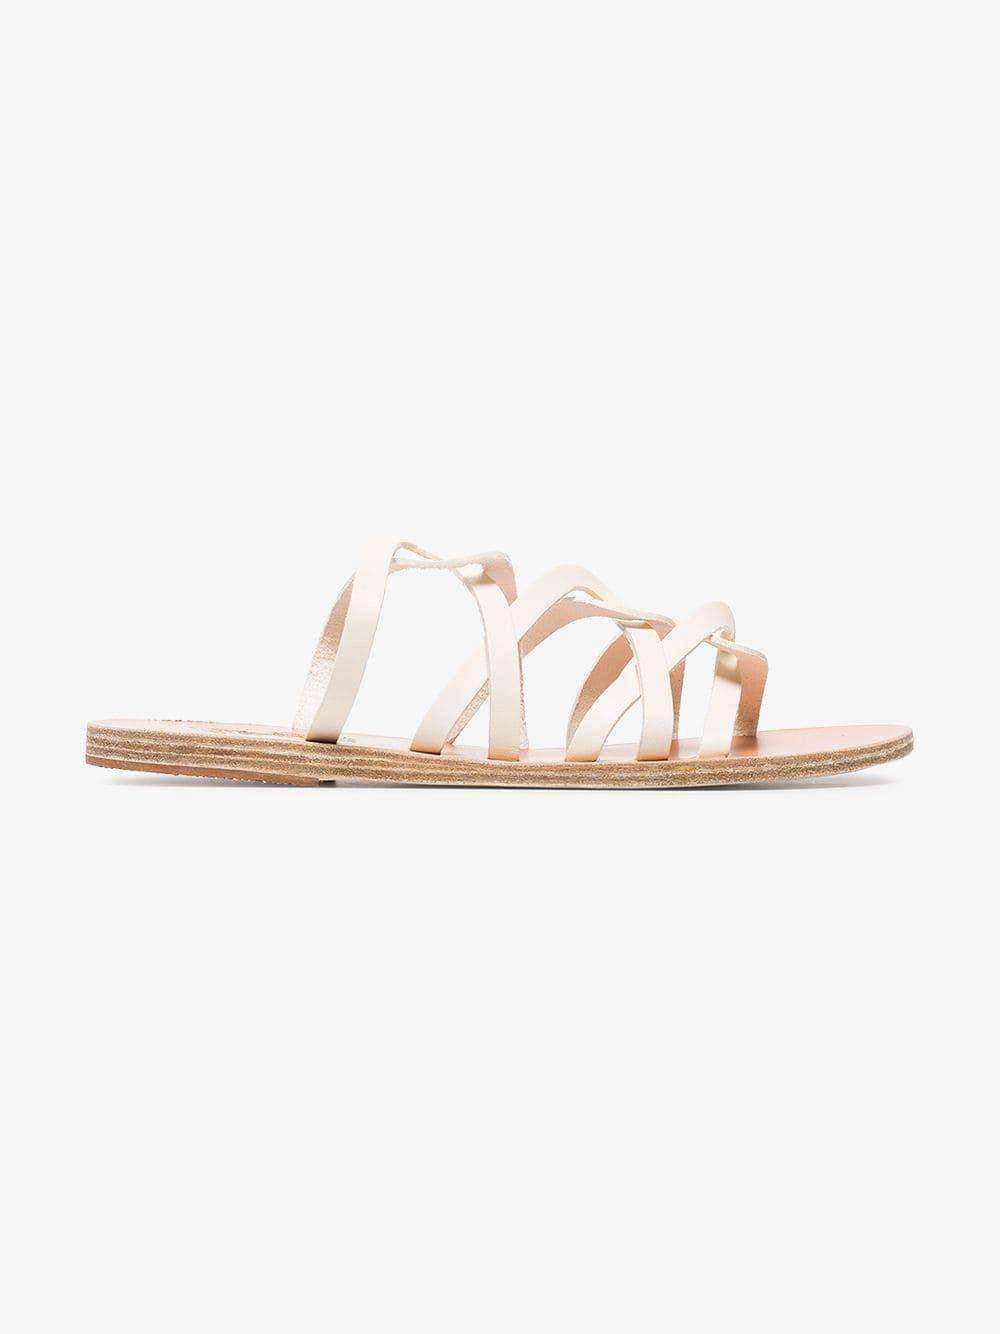 6cdf566cac506b Lyst - Ancient Greek Sandals White Donousa Multistrap Leather Sandals in  White - Save 3.9548022598870034%